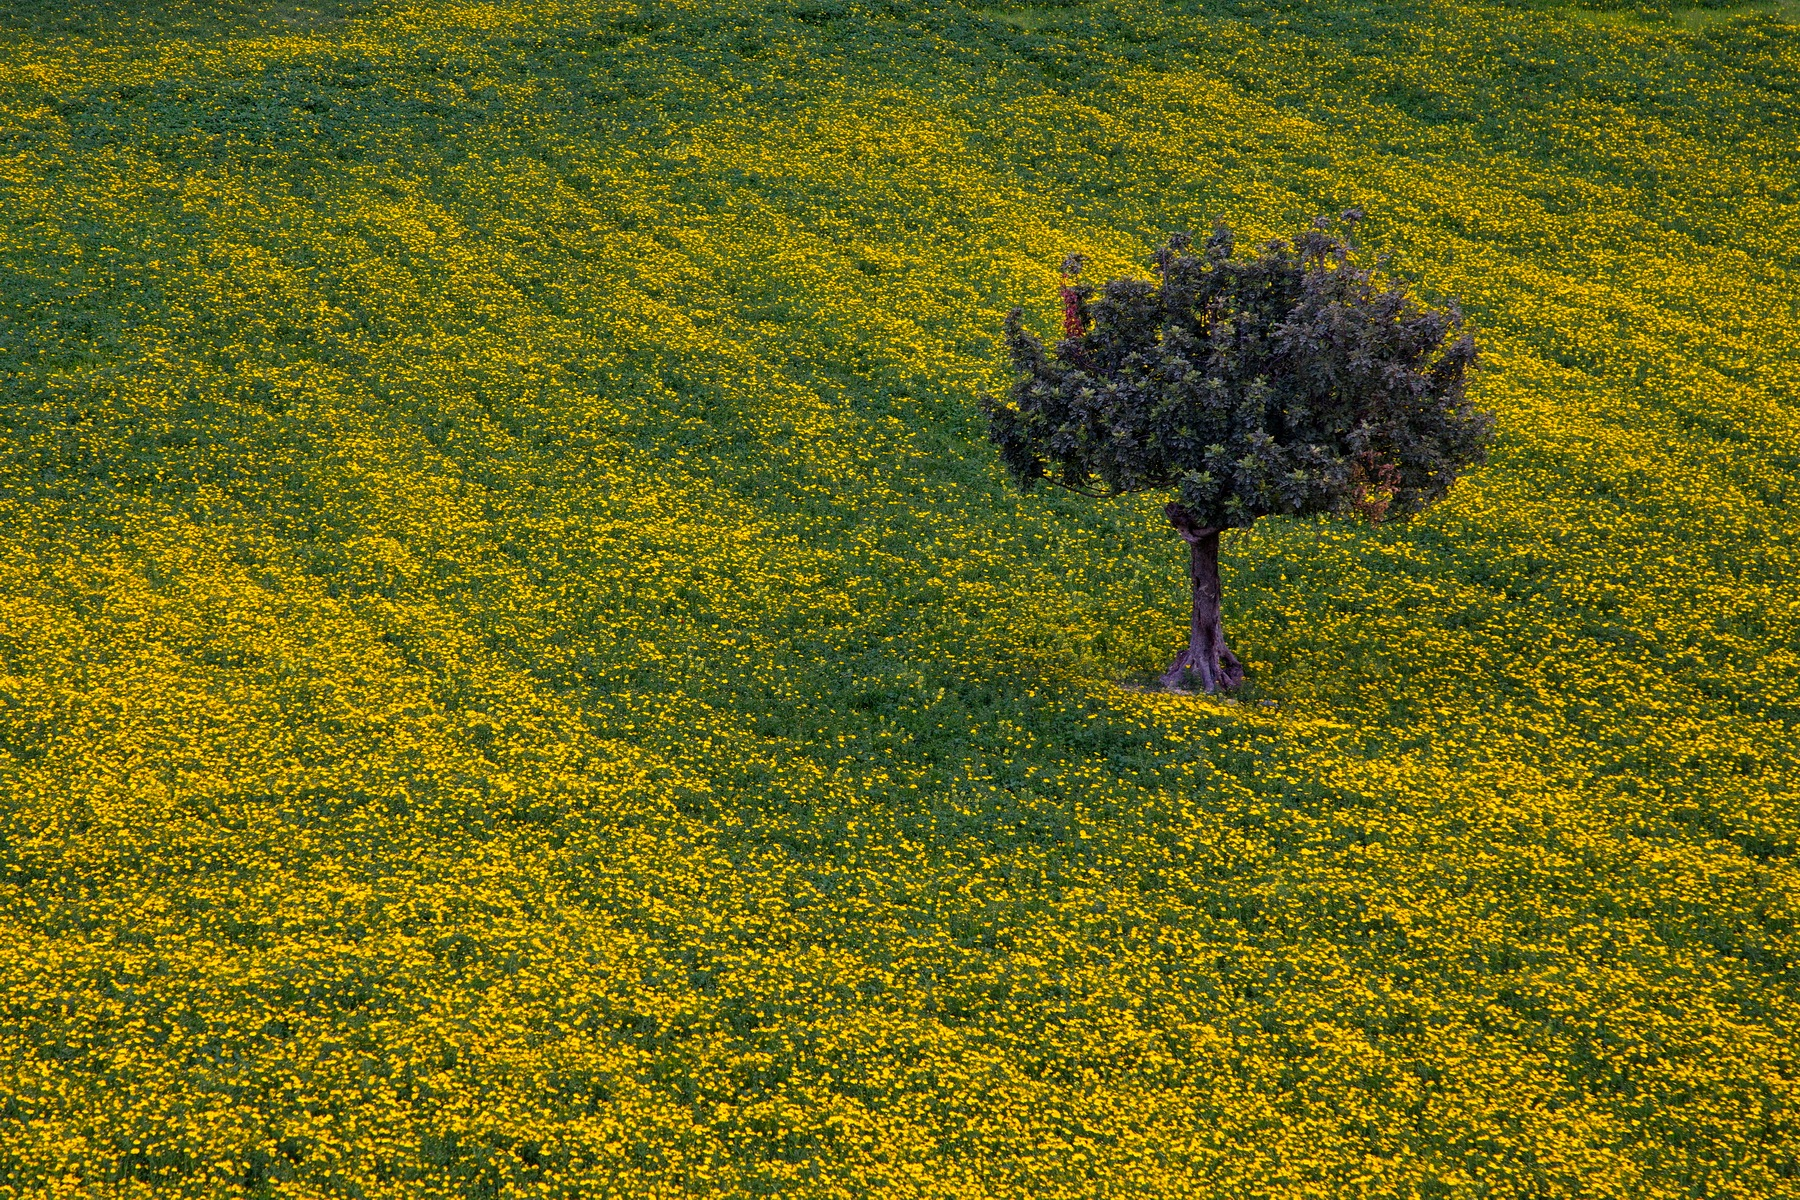 A Field of Yellow Daisies by Kassianos Kassianou